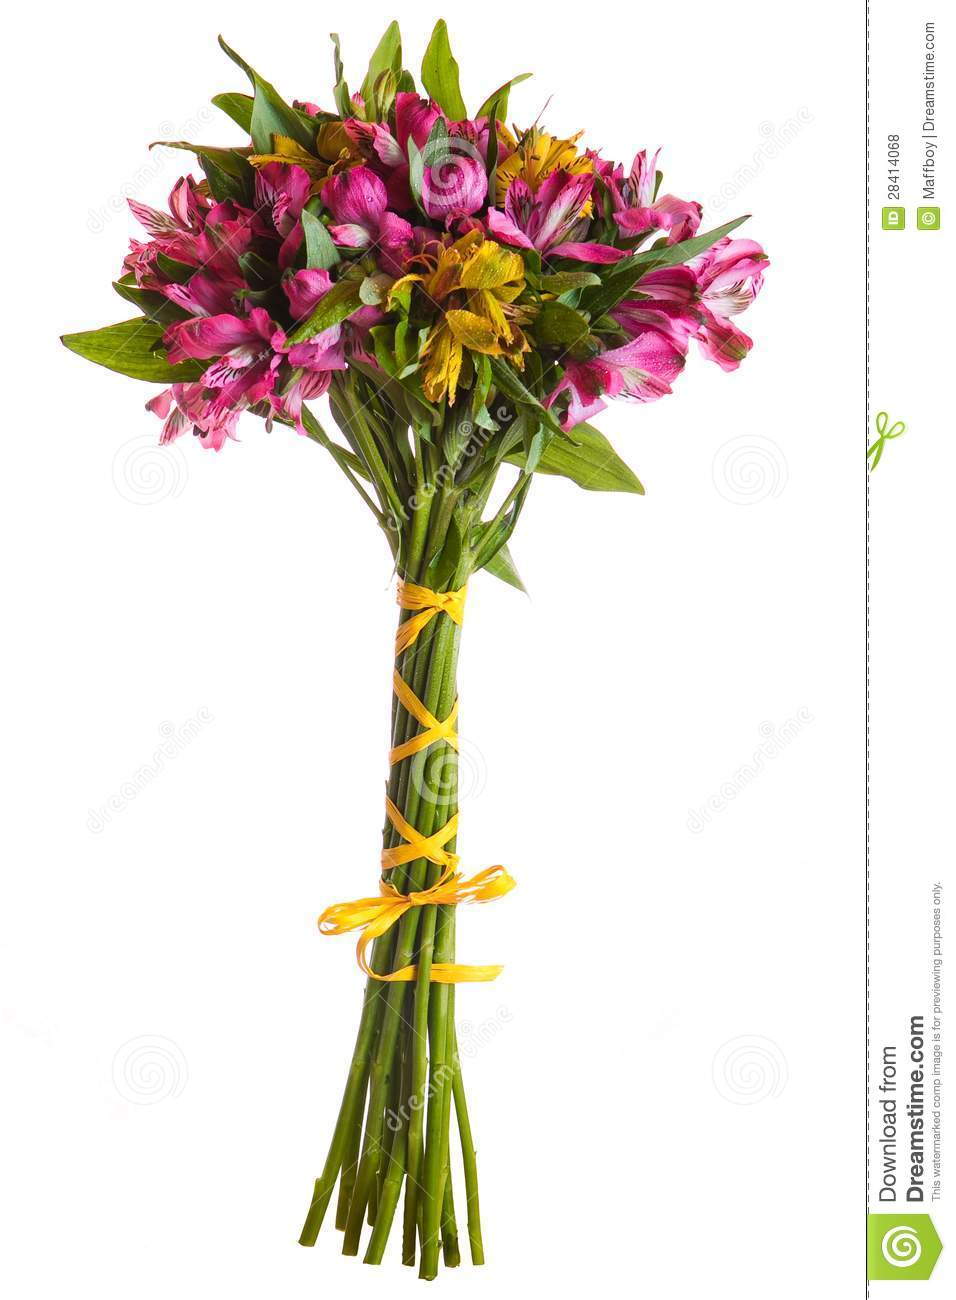 Alstroemeria Flowers Bouquet Isolated Stock Photo Image Of Green